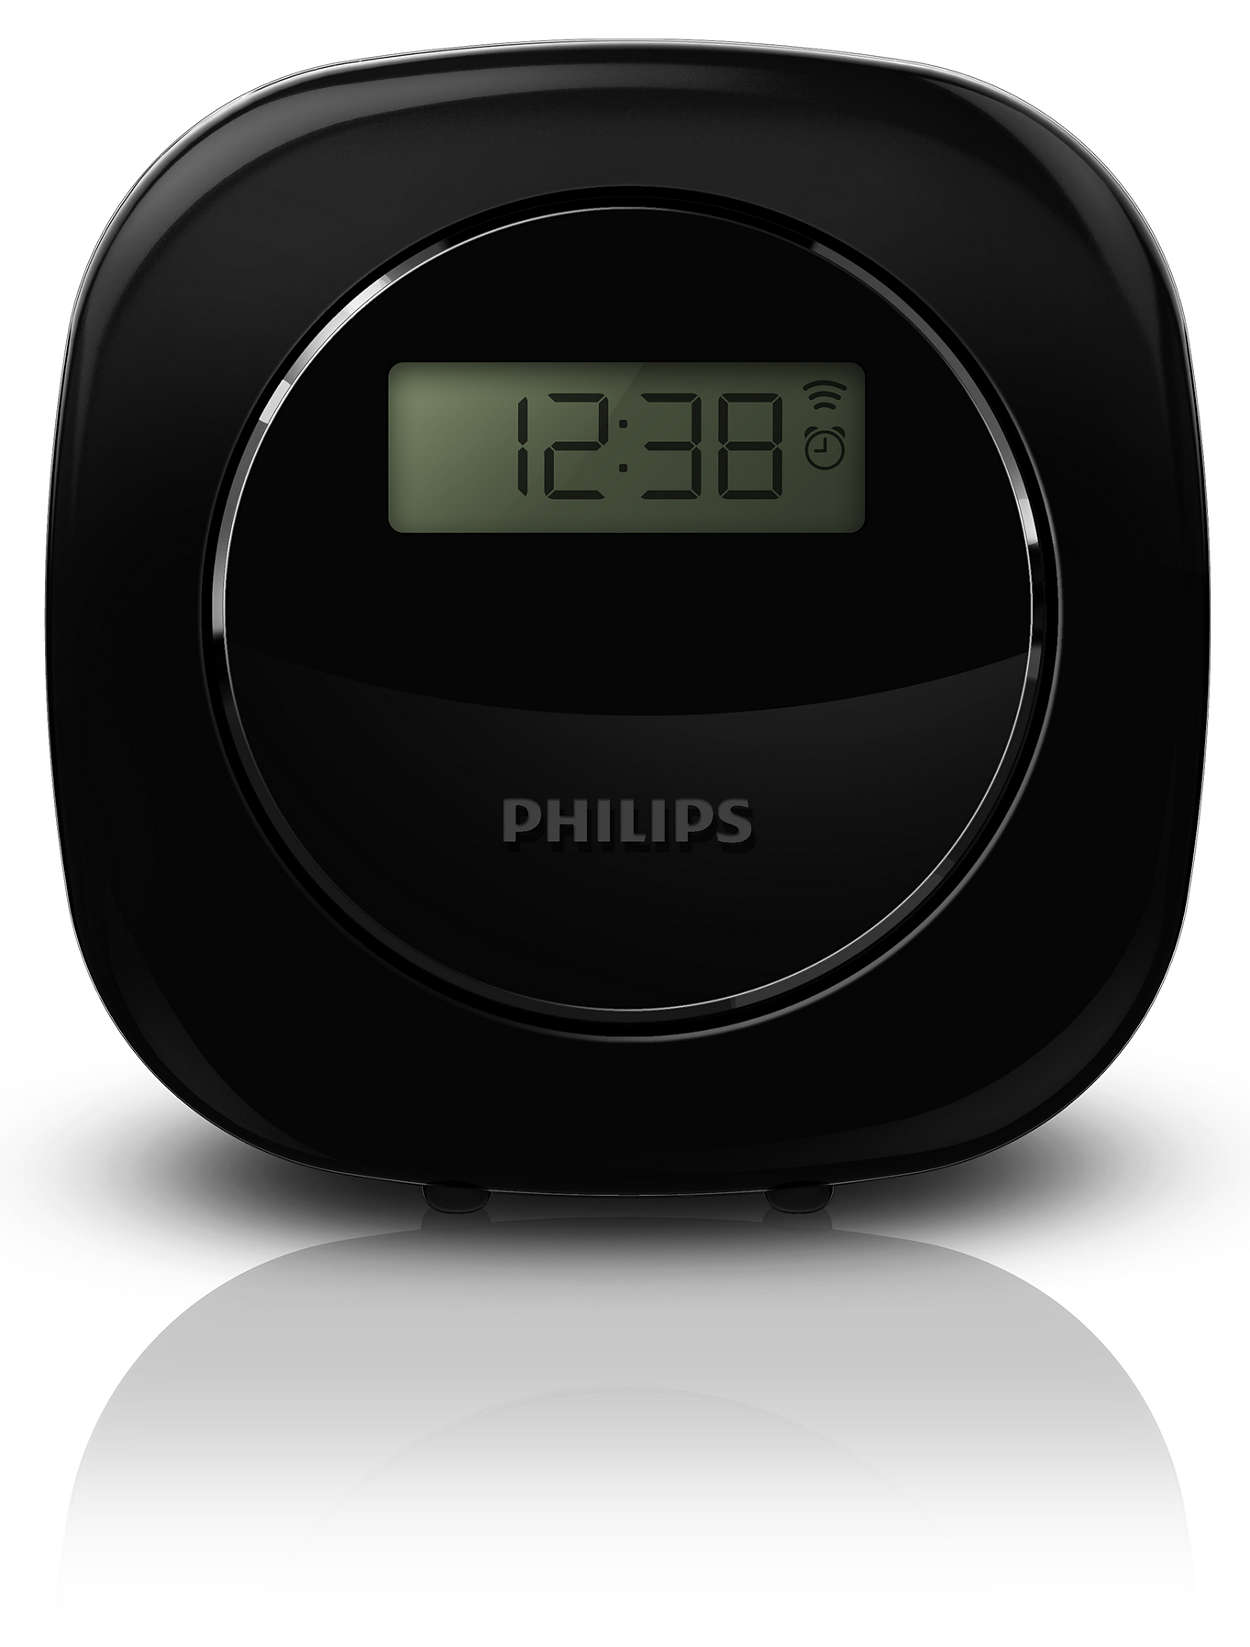 Vibrating alarm clock